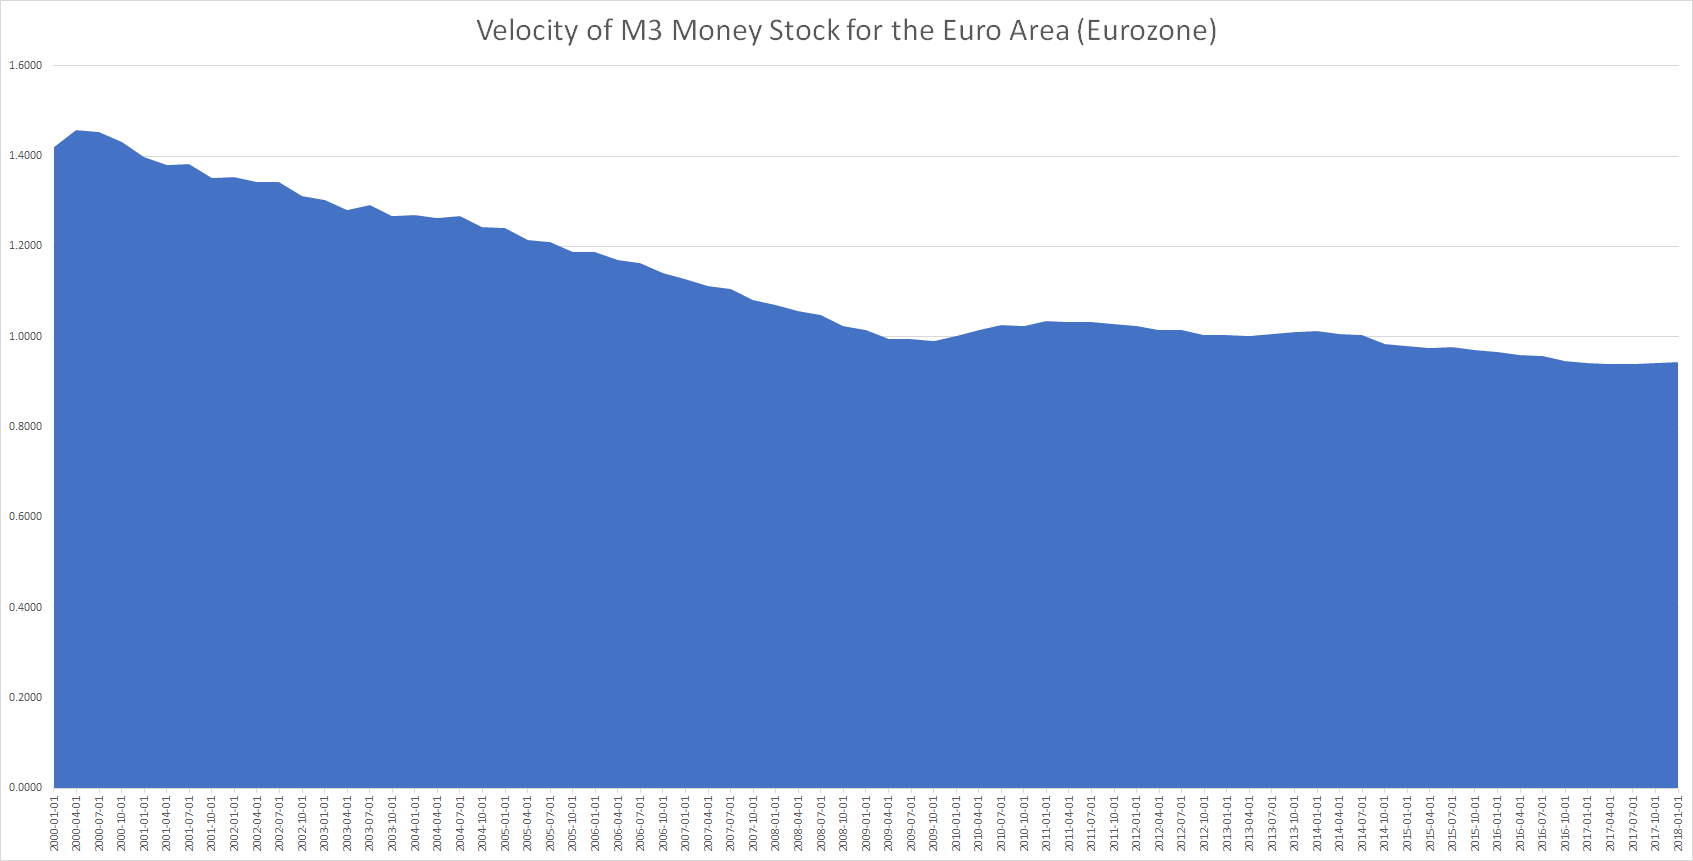 Euro area money velocity for M3 money stock supply